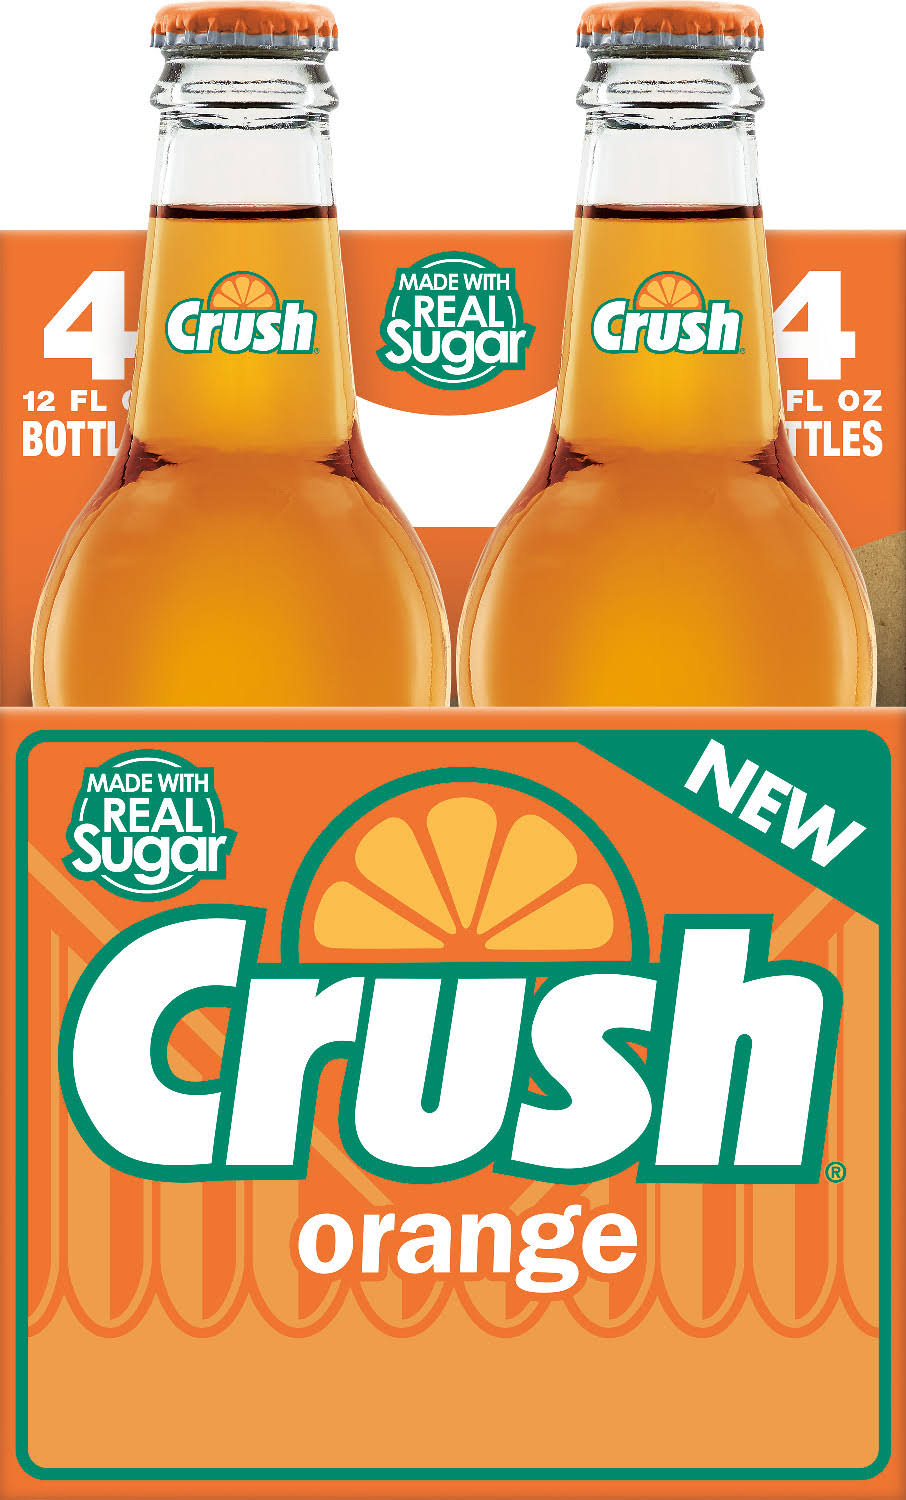 Crush Orange Soda - 12oz, 4ct